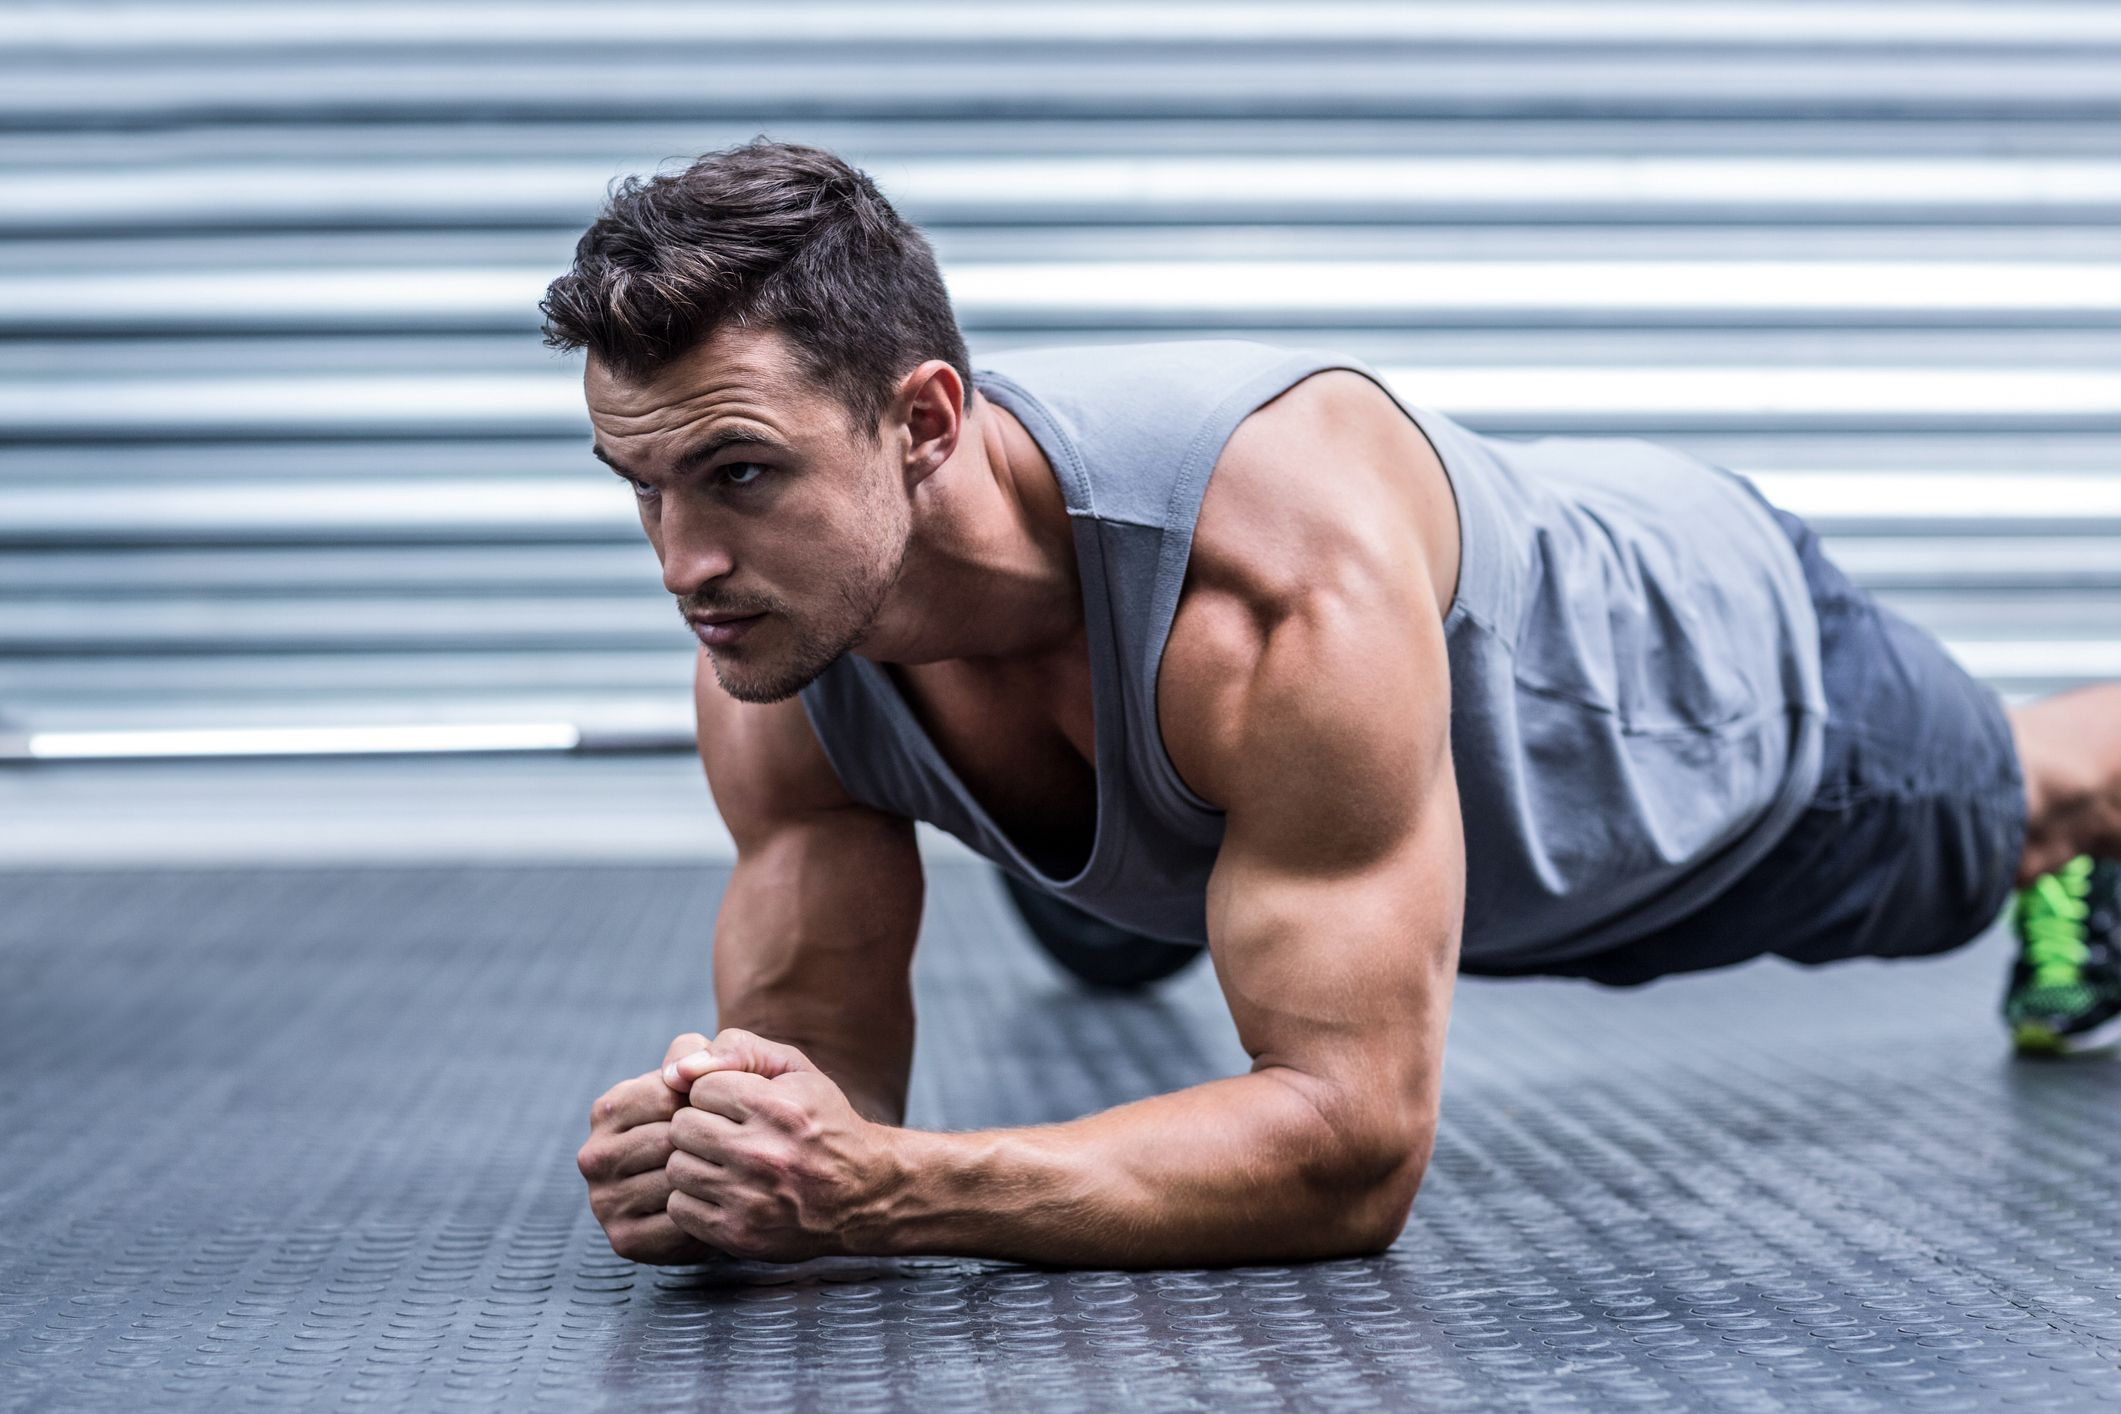 The 5-Move Workout That Tightens Your Core and Fends Off Back Pain